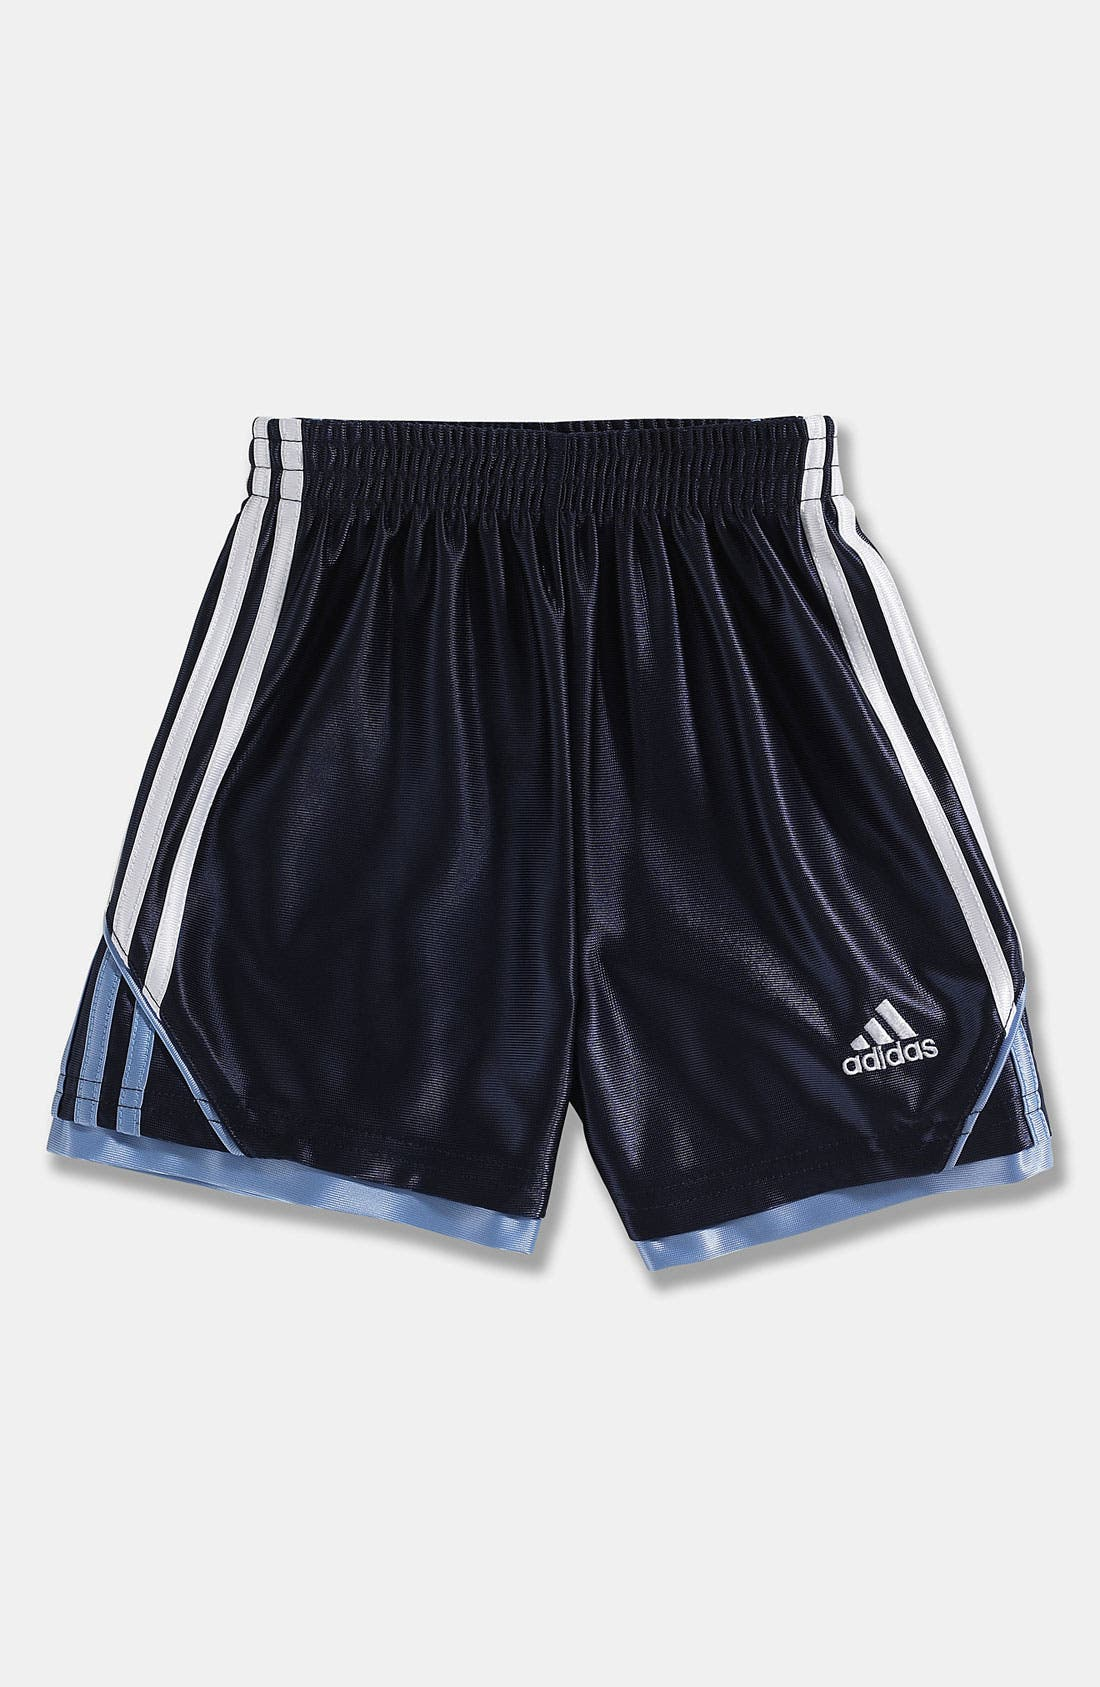 Alternate Image 1 Selected - adidas 'Prime Dazzle' Shorts (Toddler)